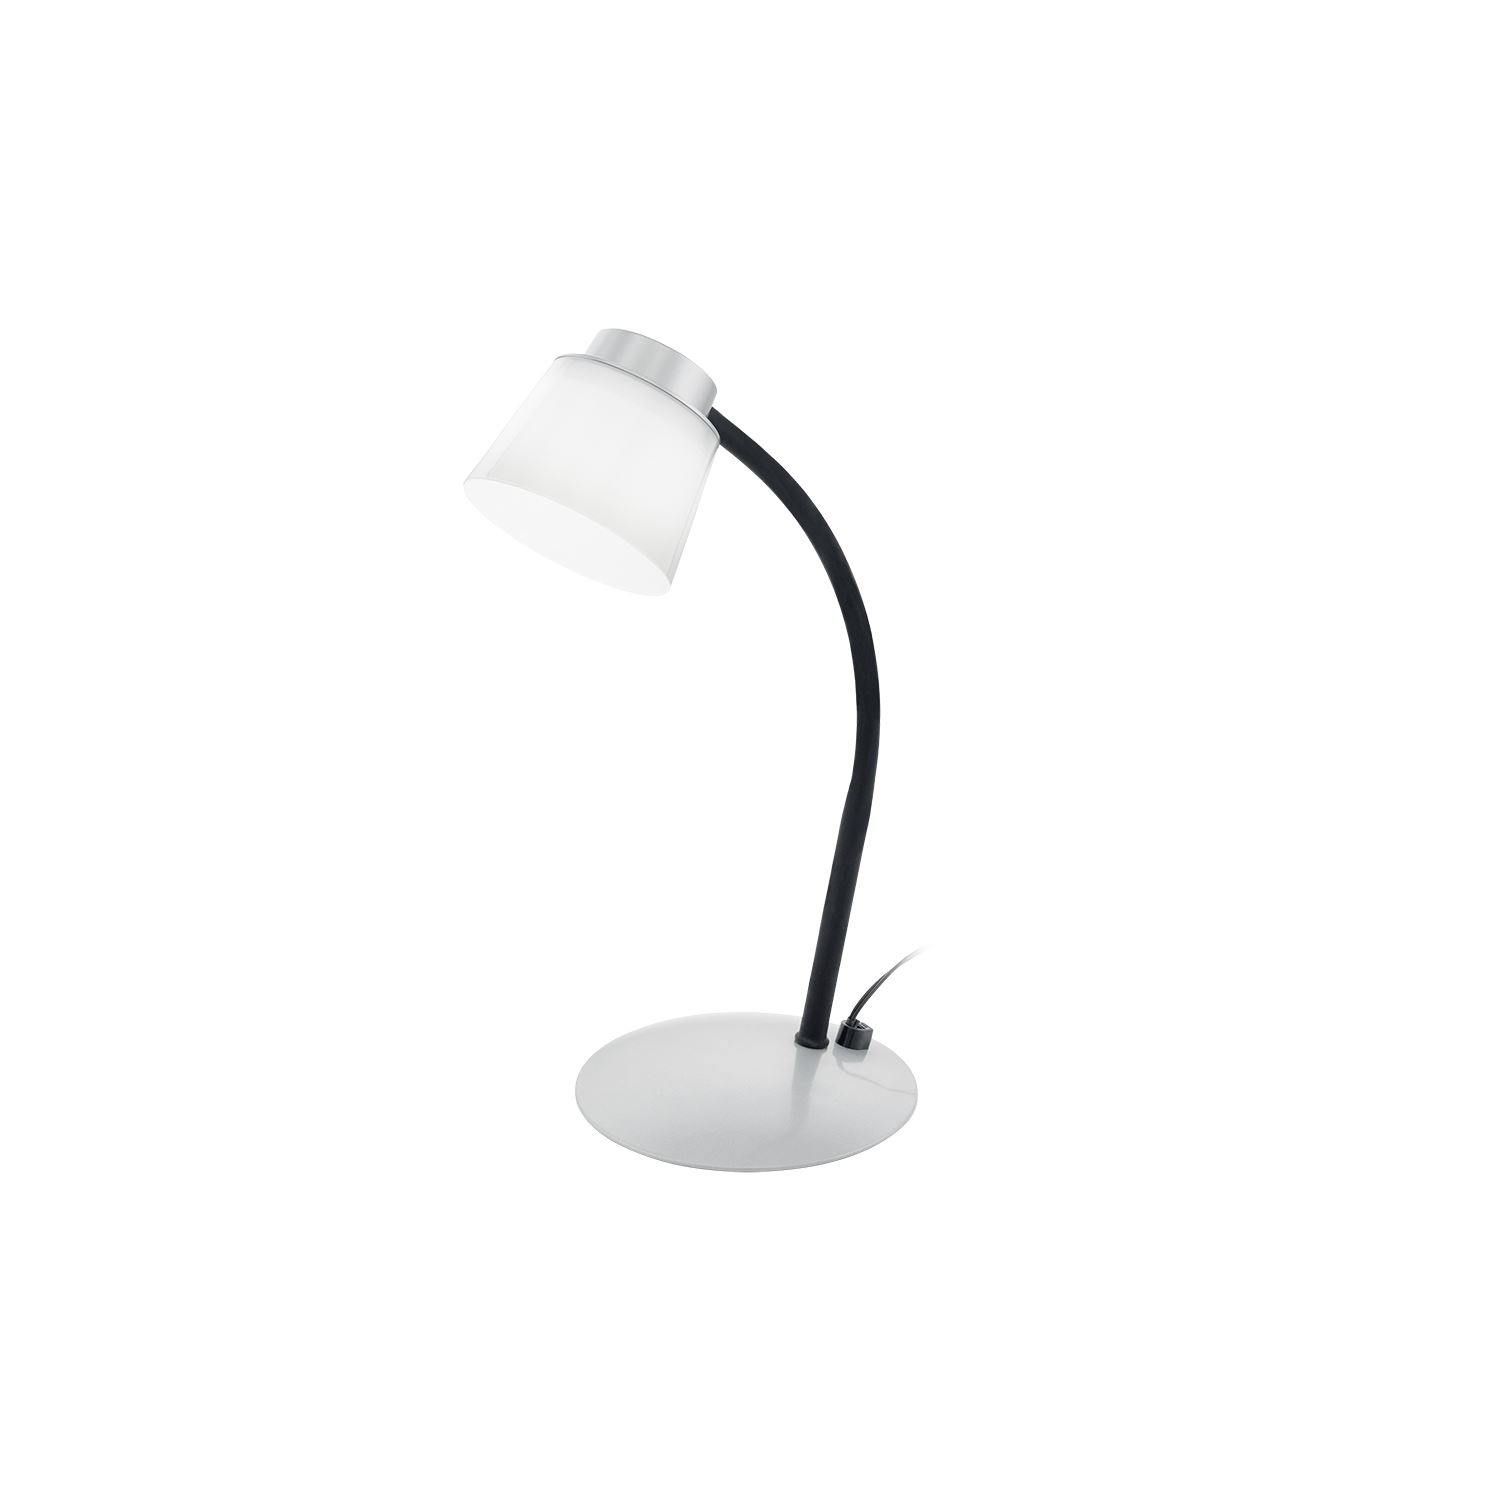 Torrina Led-Table Lamp Silver, Black White Color Touchdimmer